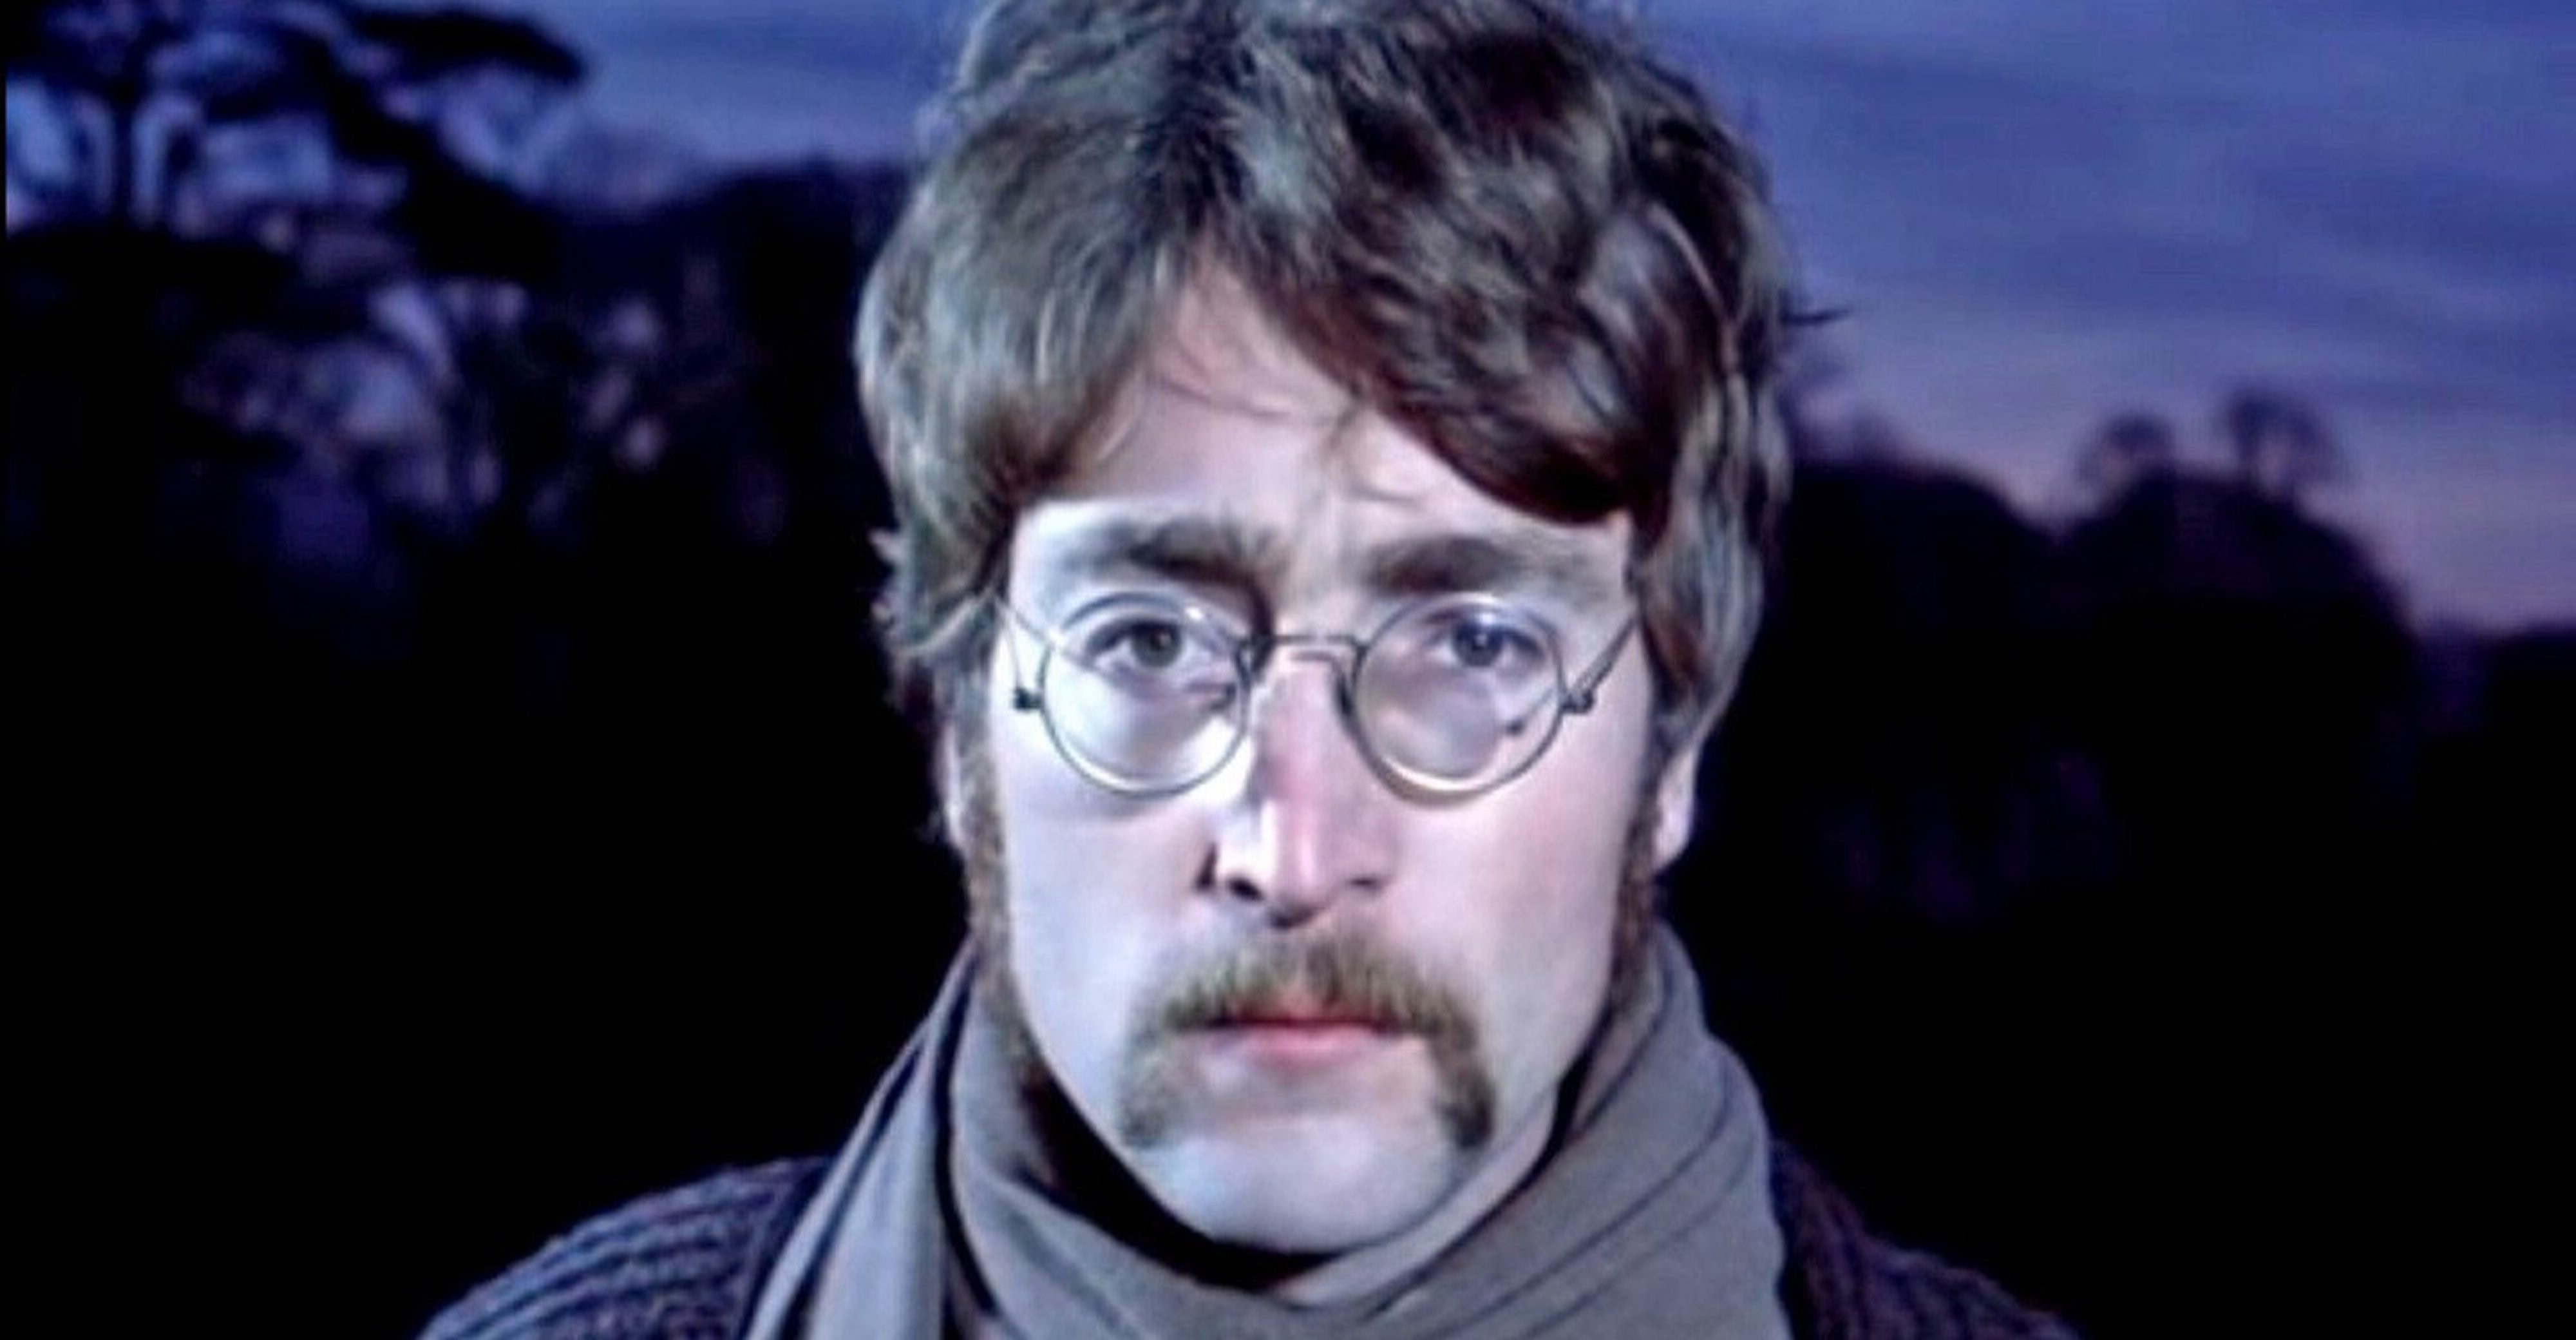 Handlebar mustache in the style of John Lennon.